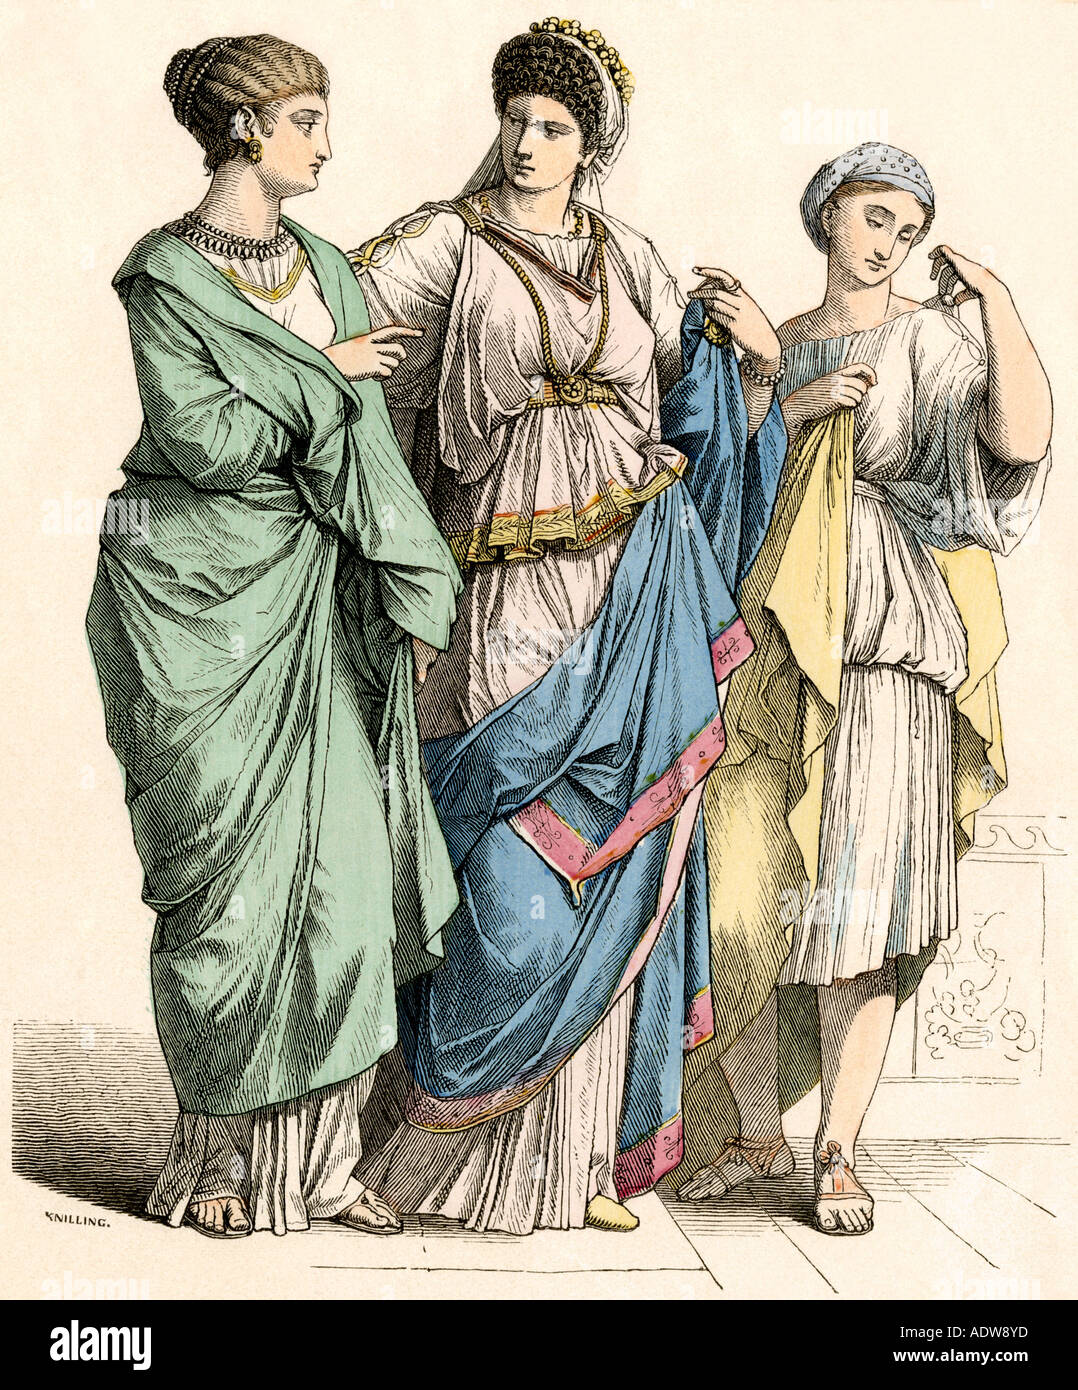 Ladies And Their Slave Girl In Ancient Rome Stock Photo